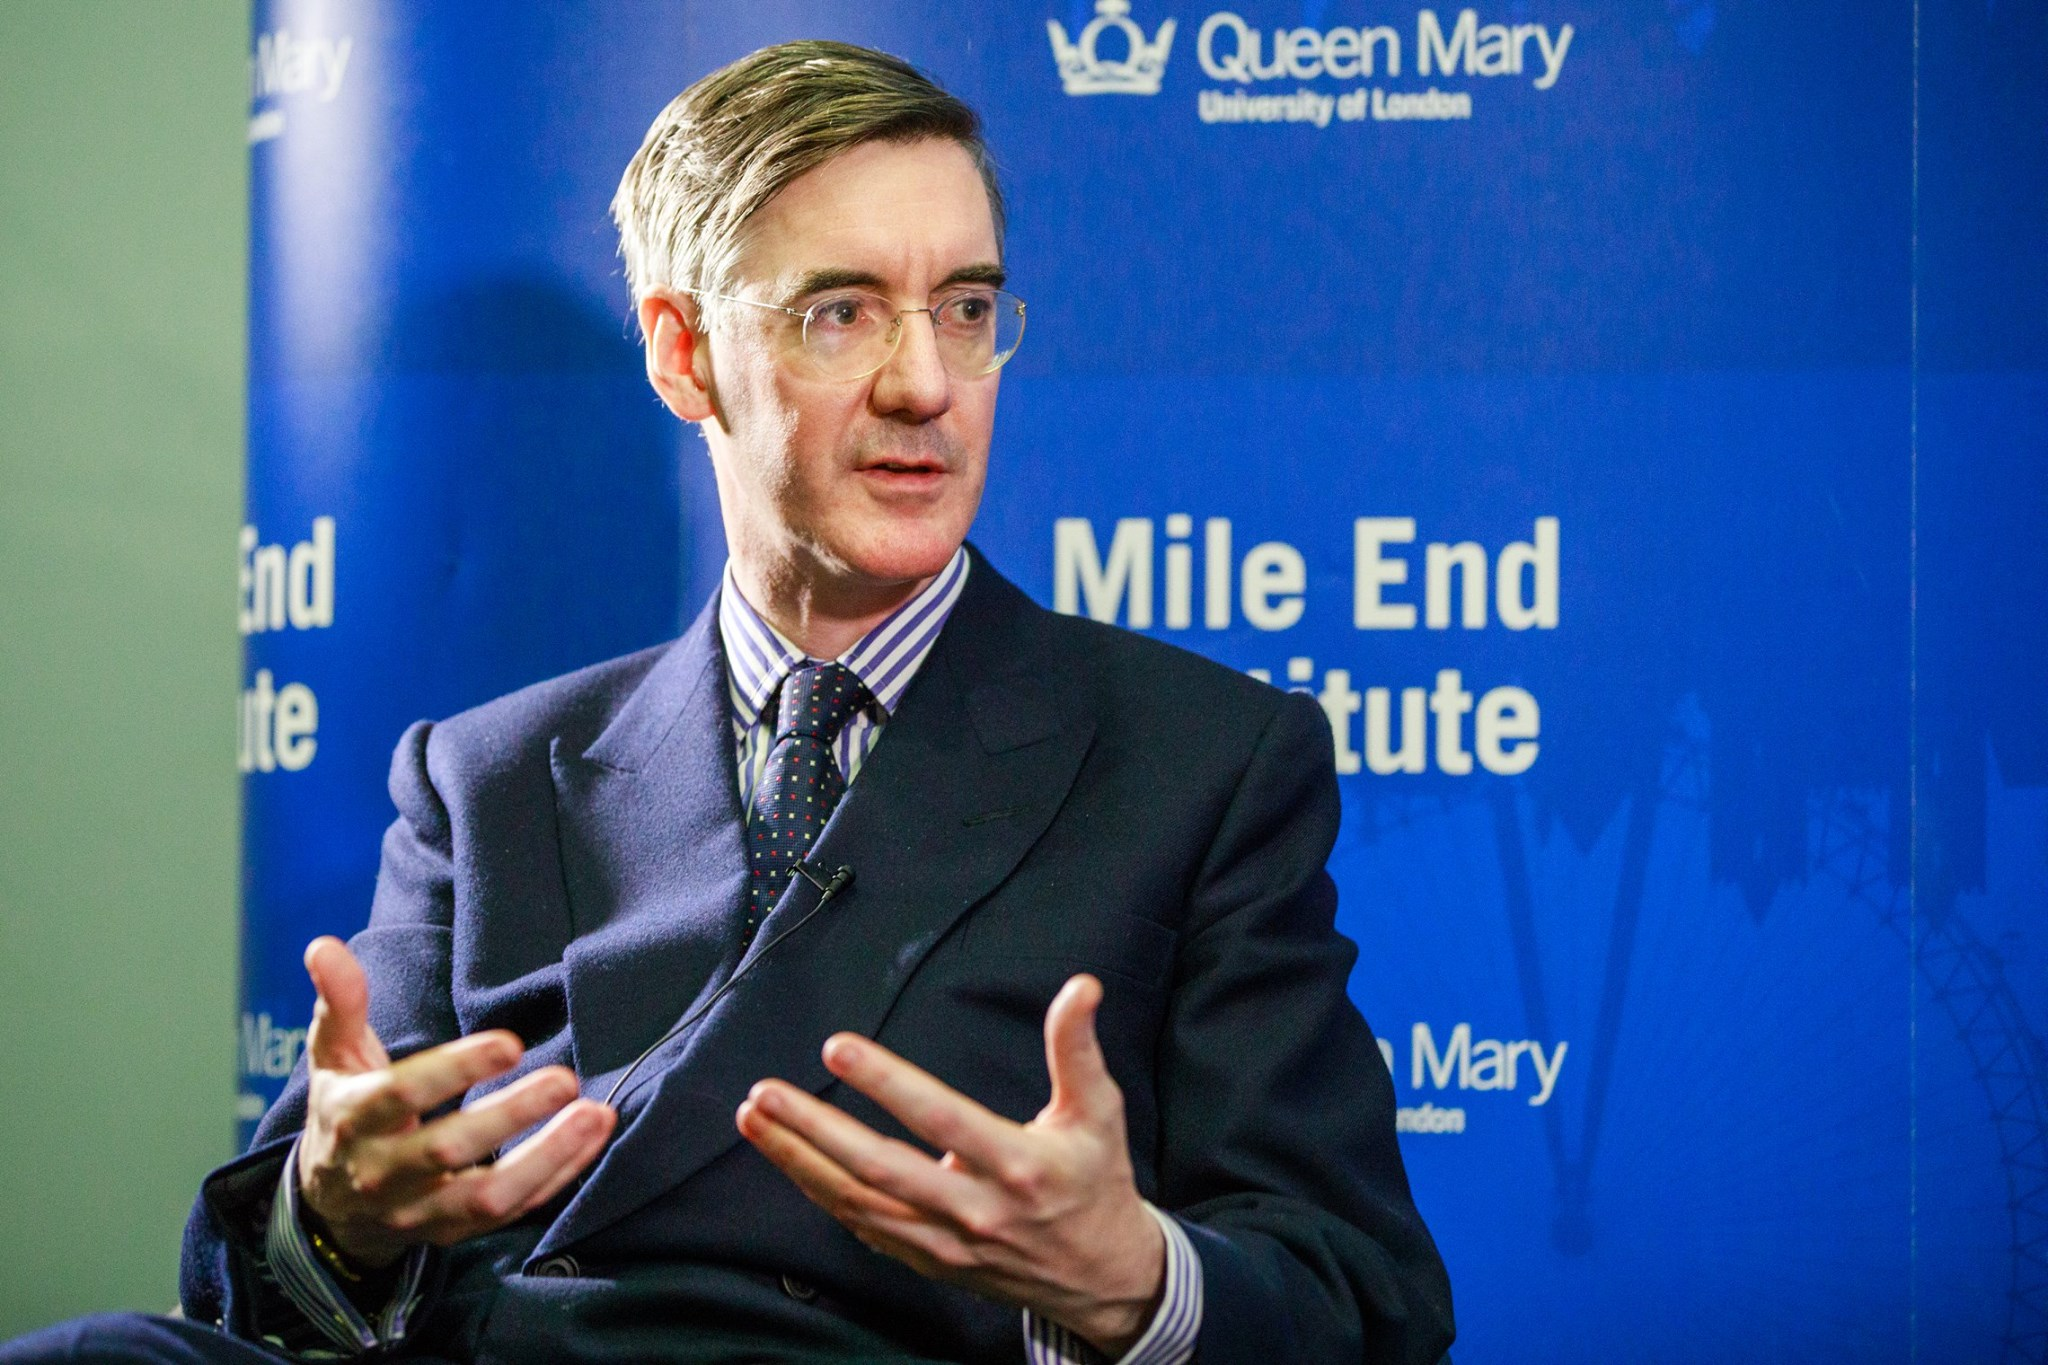 Jacob Rees-Mogg visits Queen Mary